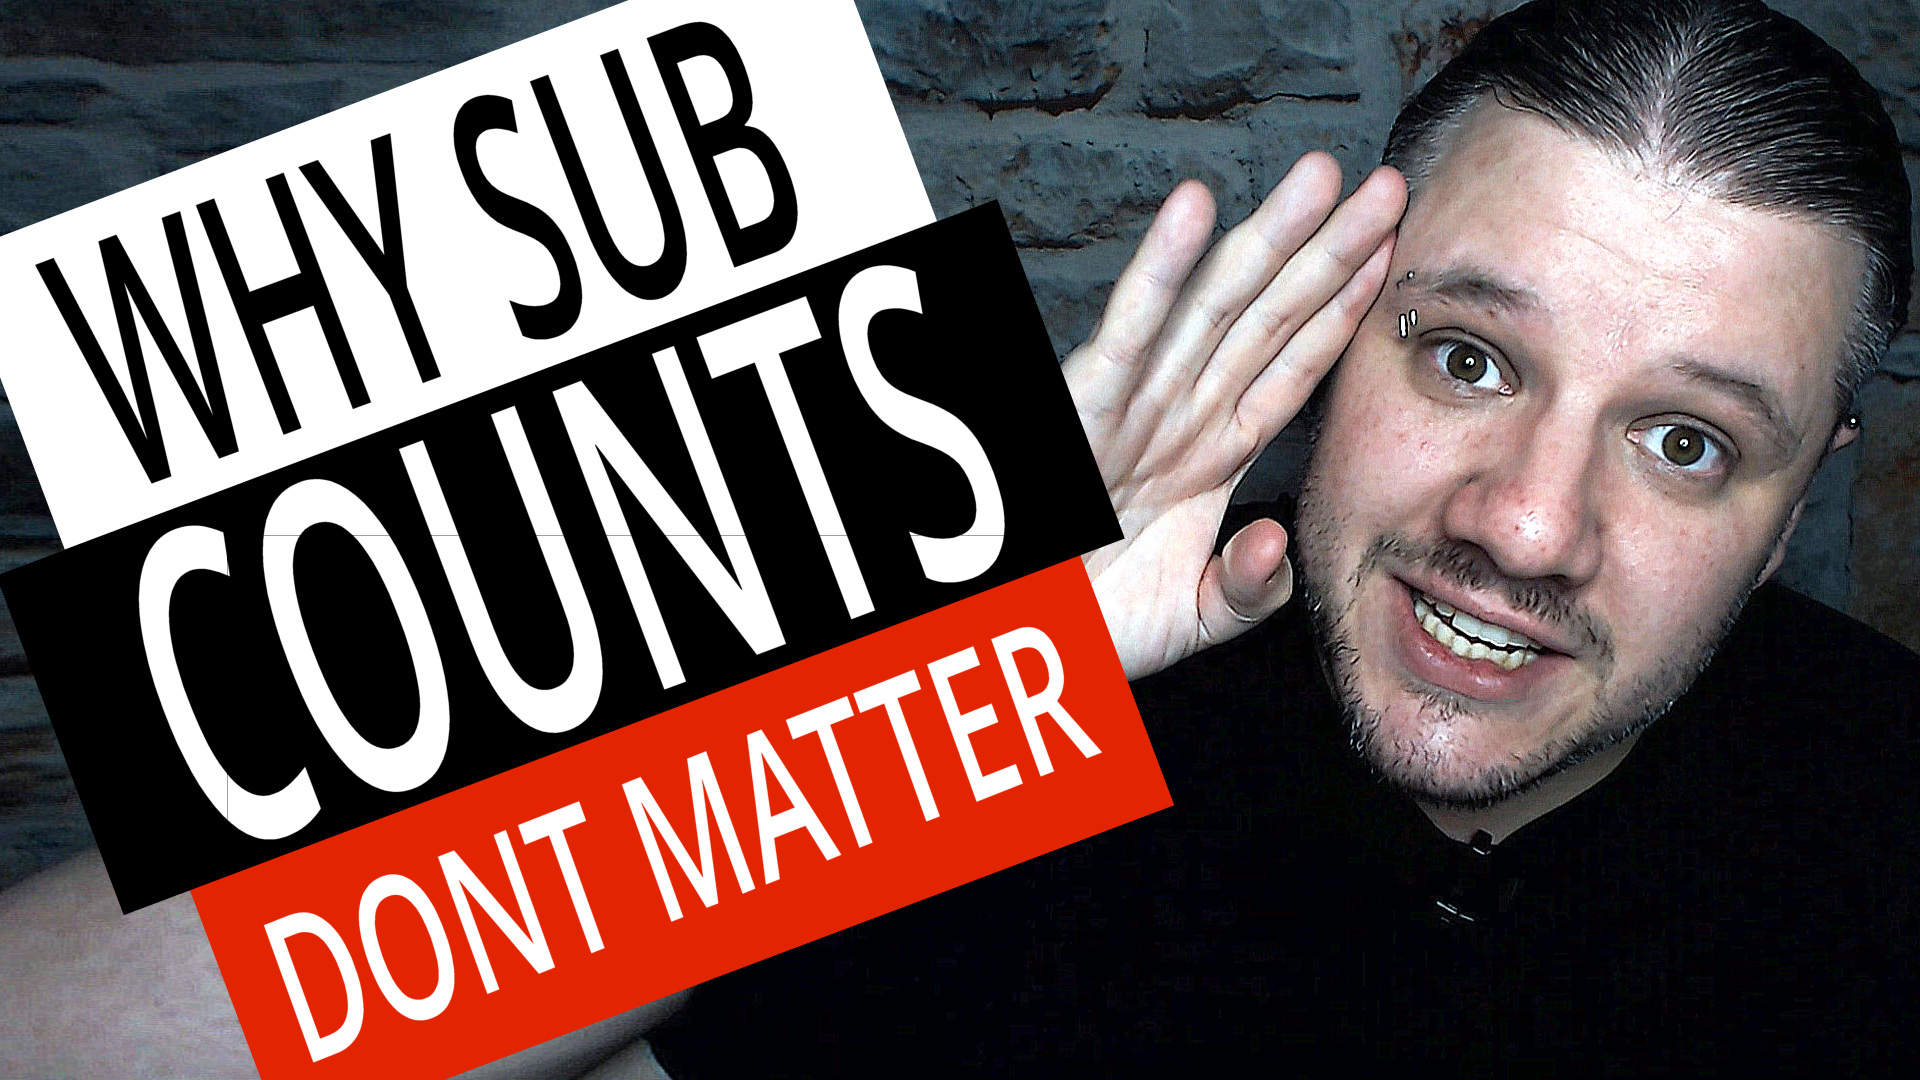 alan spicer,alanspicer,youtube tips,youtube tricks,asyt,youtube tips 2018,do subscribers matter,youtube subscribers,does subscriber count matter,does sub count matter,Why Subscriber Counts Do Not Matter,Why Subscriber Count Does Not Matter,subscriber count,subscribers are not important,do subscribers matter on youtube,youtube subscribers count,youtube rant,youtube subscriber rant,rant,pewdiepie vs t series,pewdiepie vs tseries